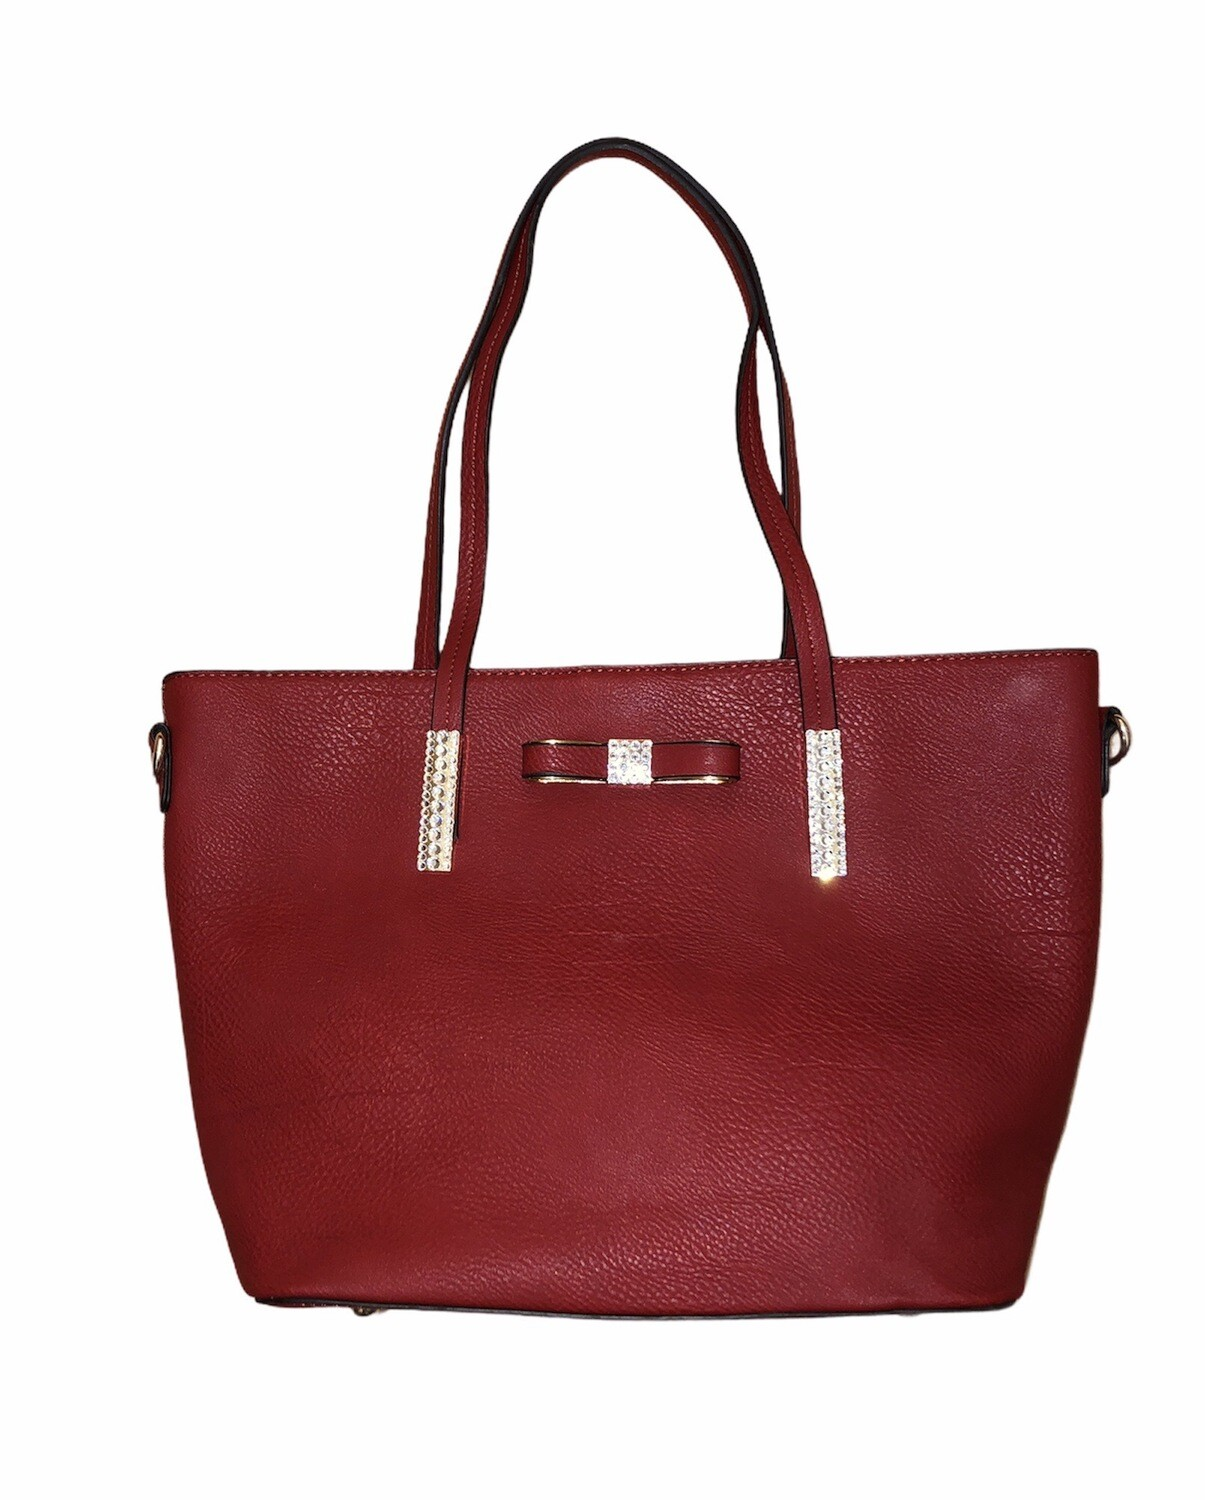 Crystal Bow Tote Bag Red